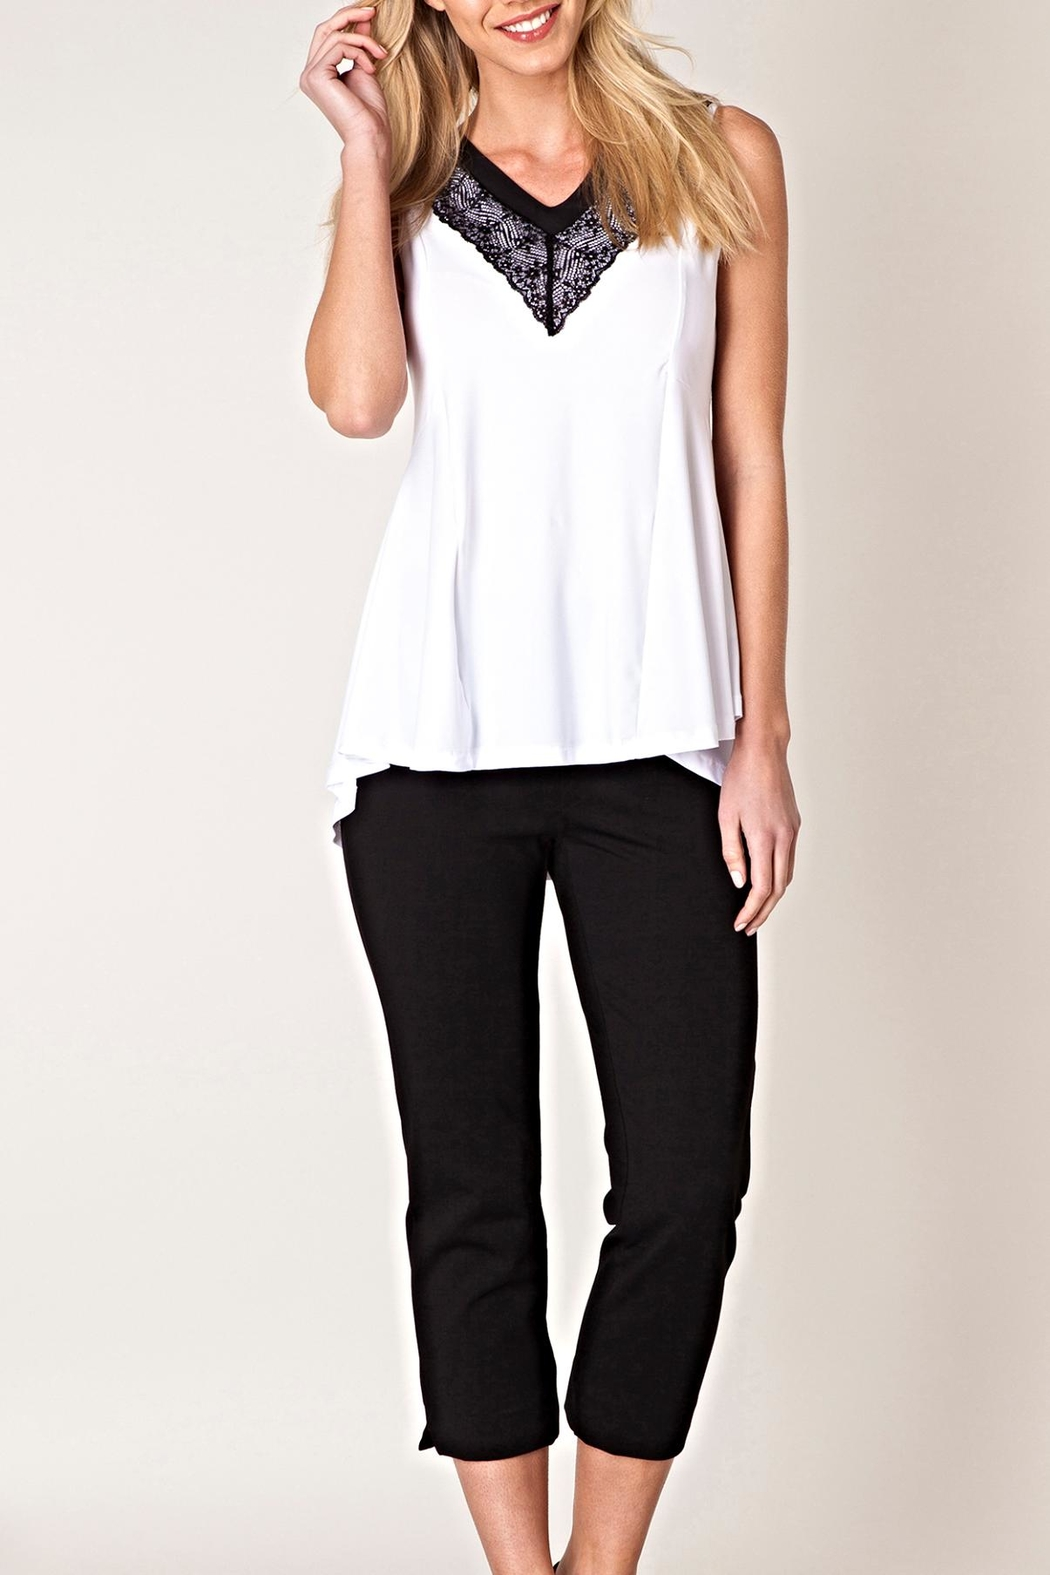 Yest Lace Trim Top - Main Image